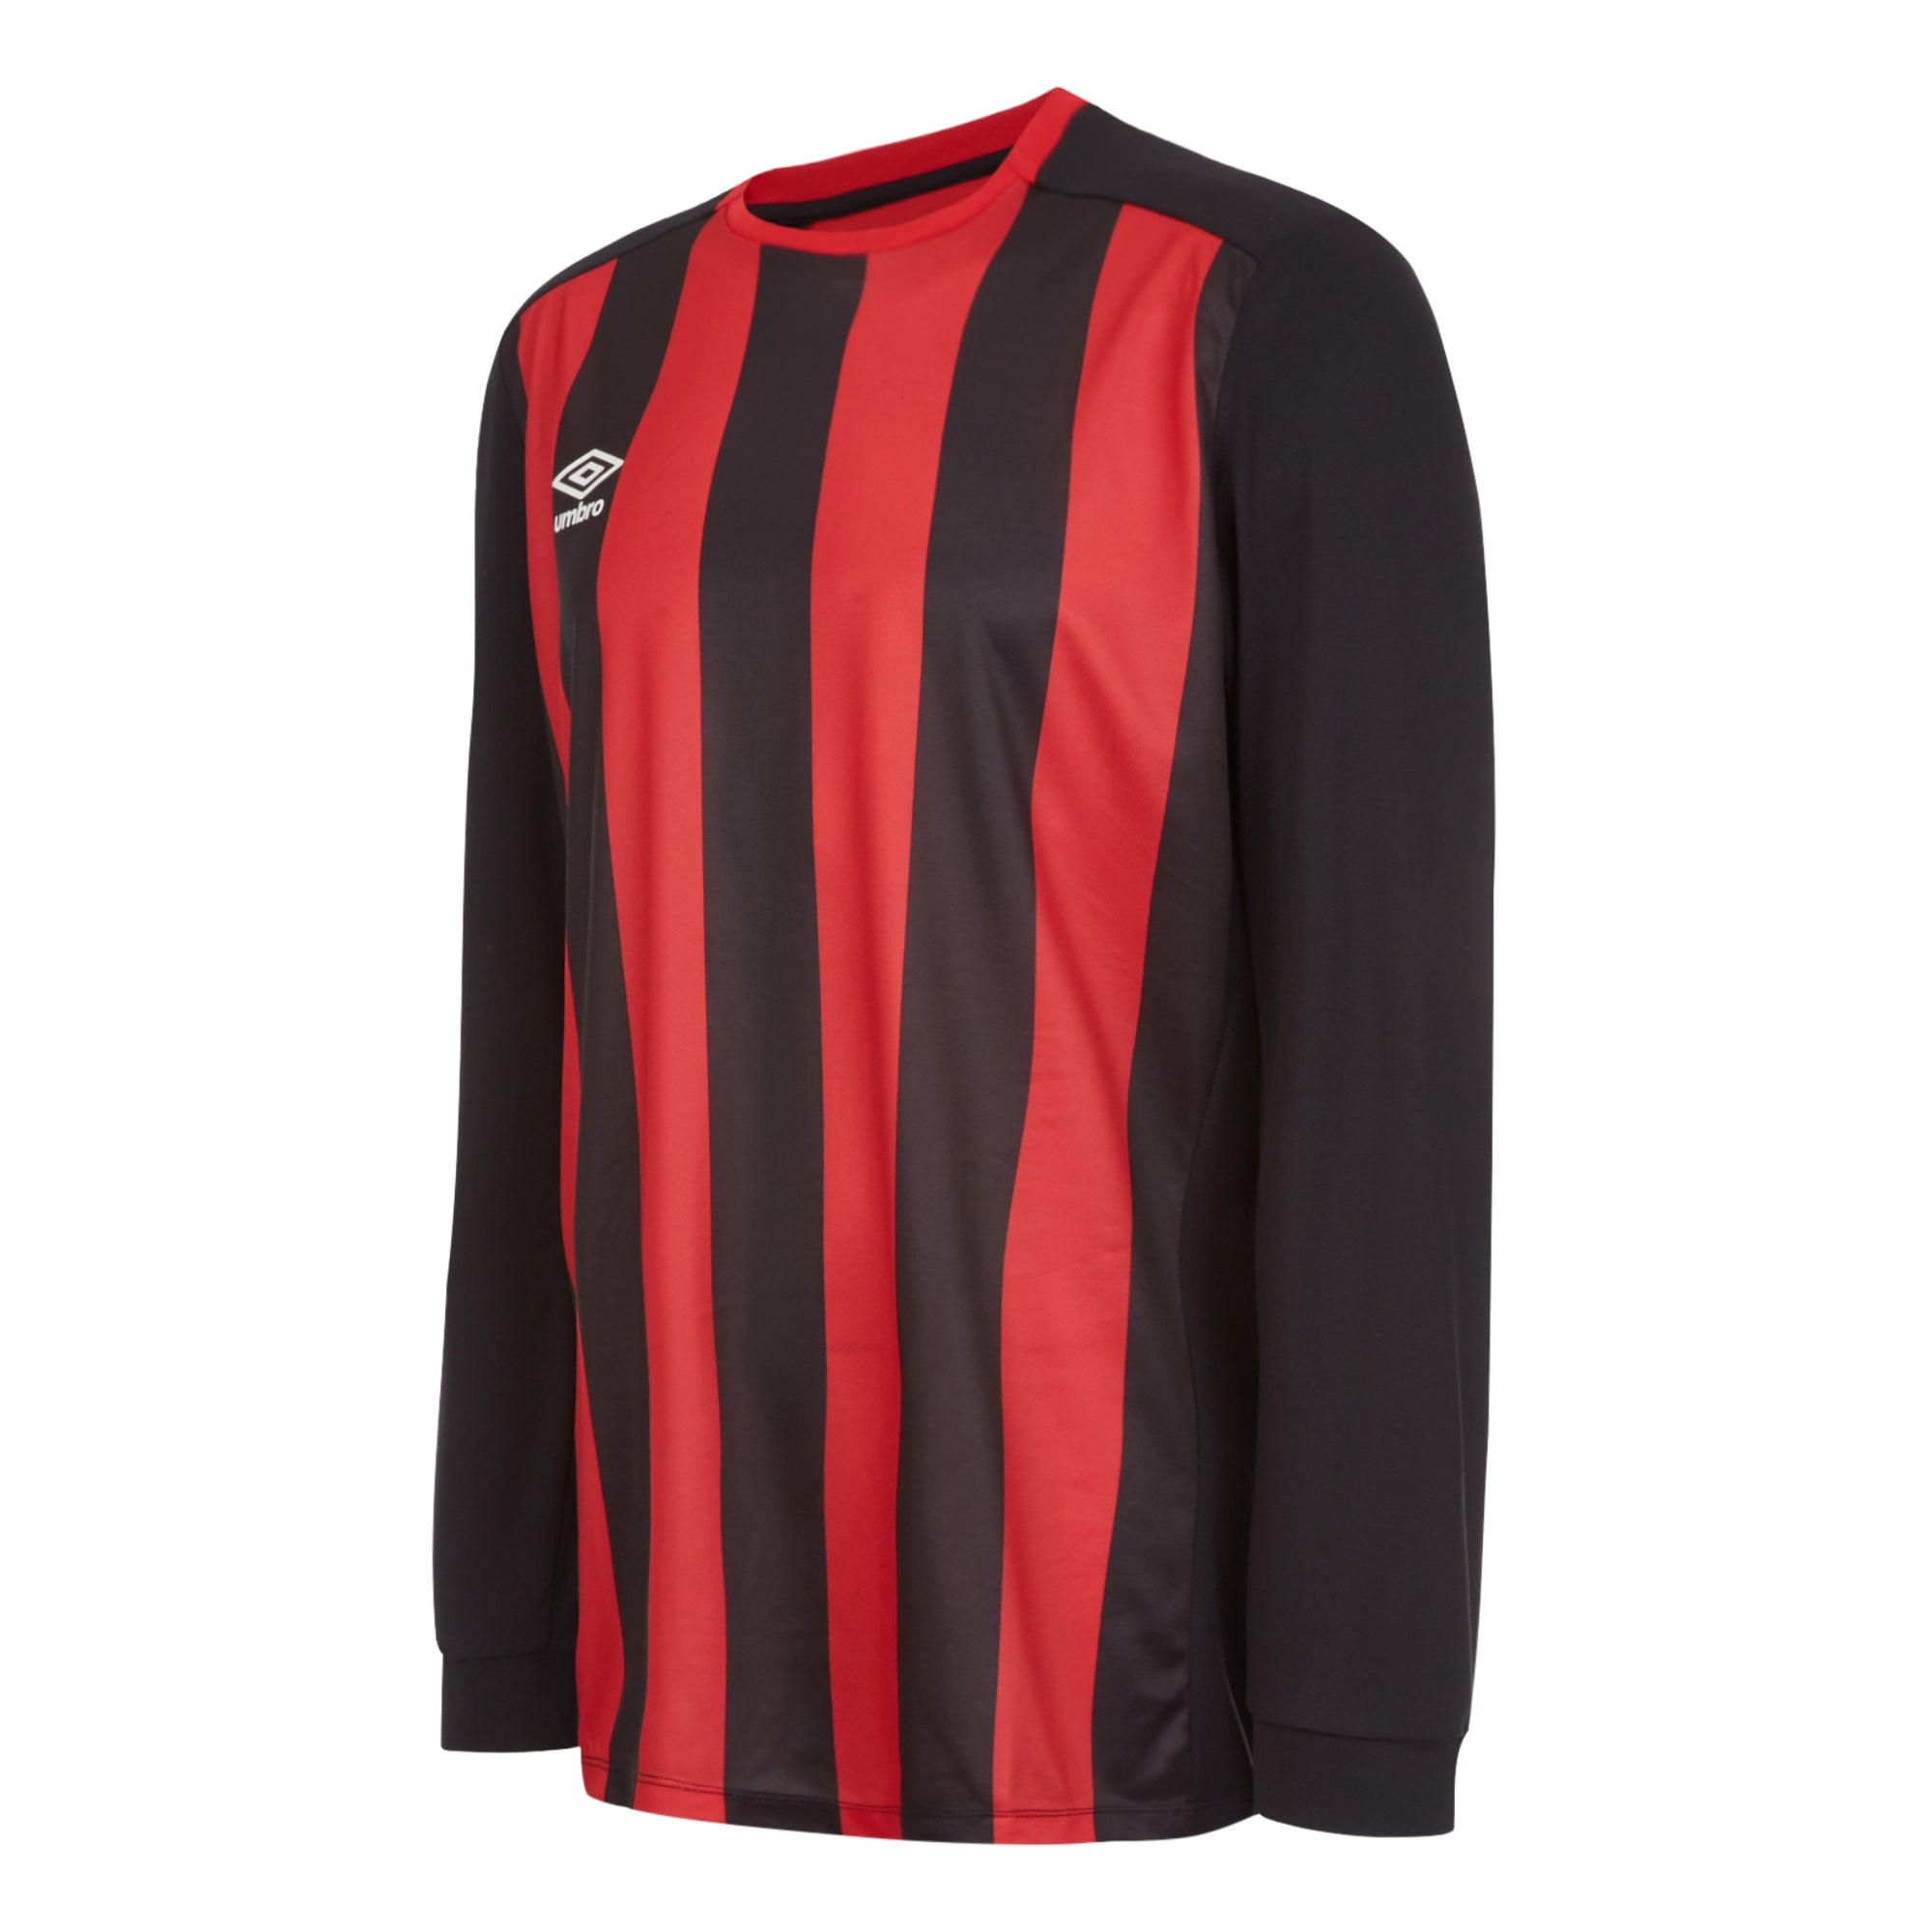 Umbro Milan Jersey LS - Black/Vermillion